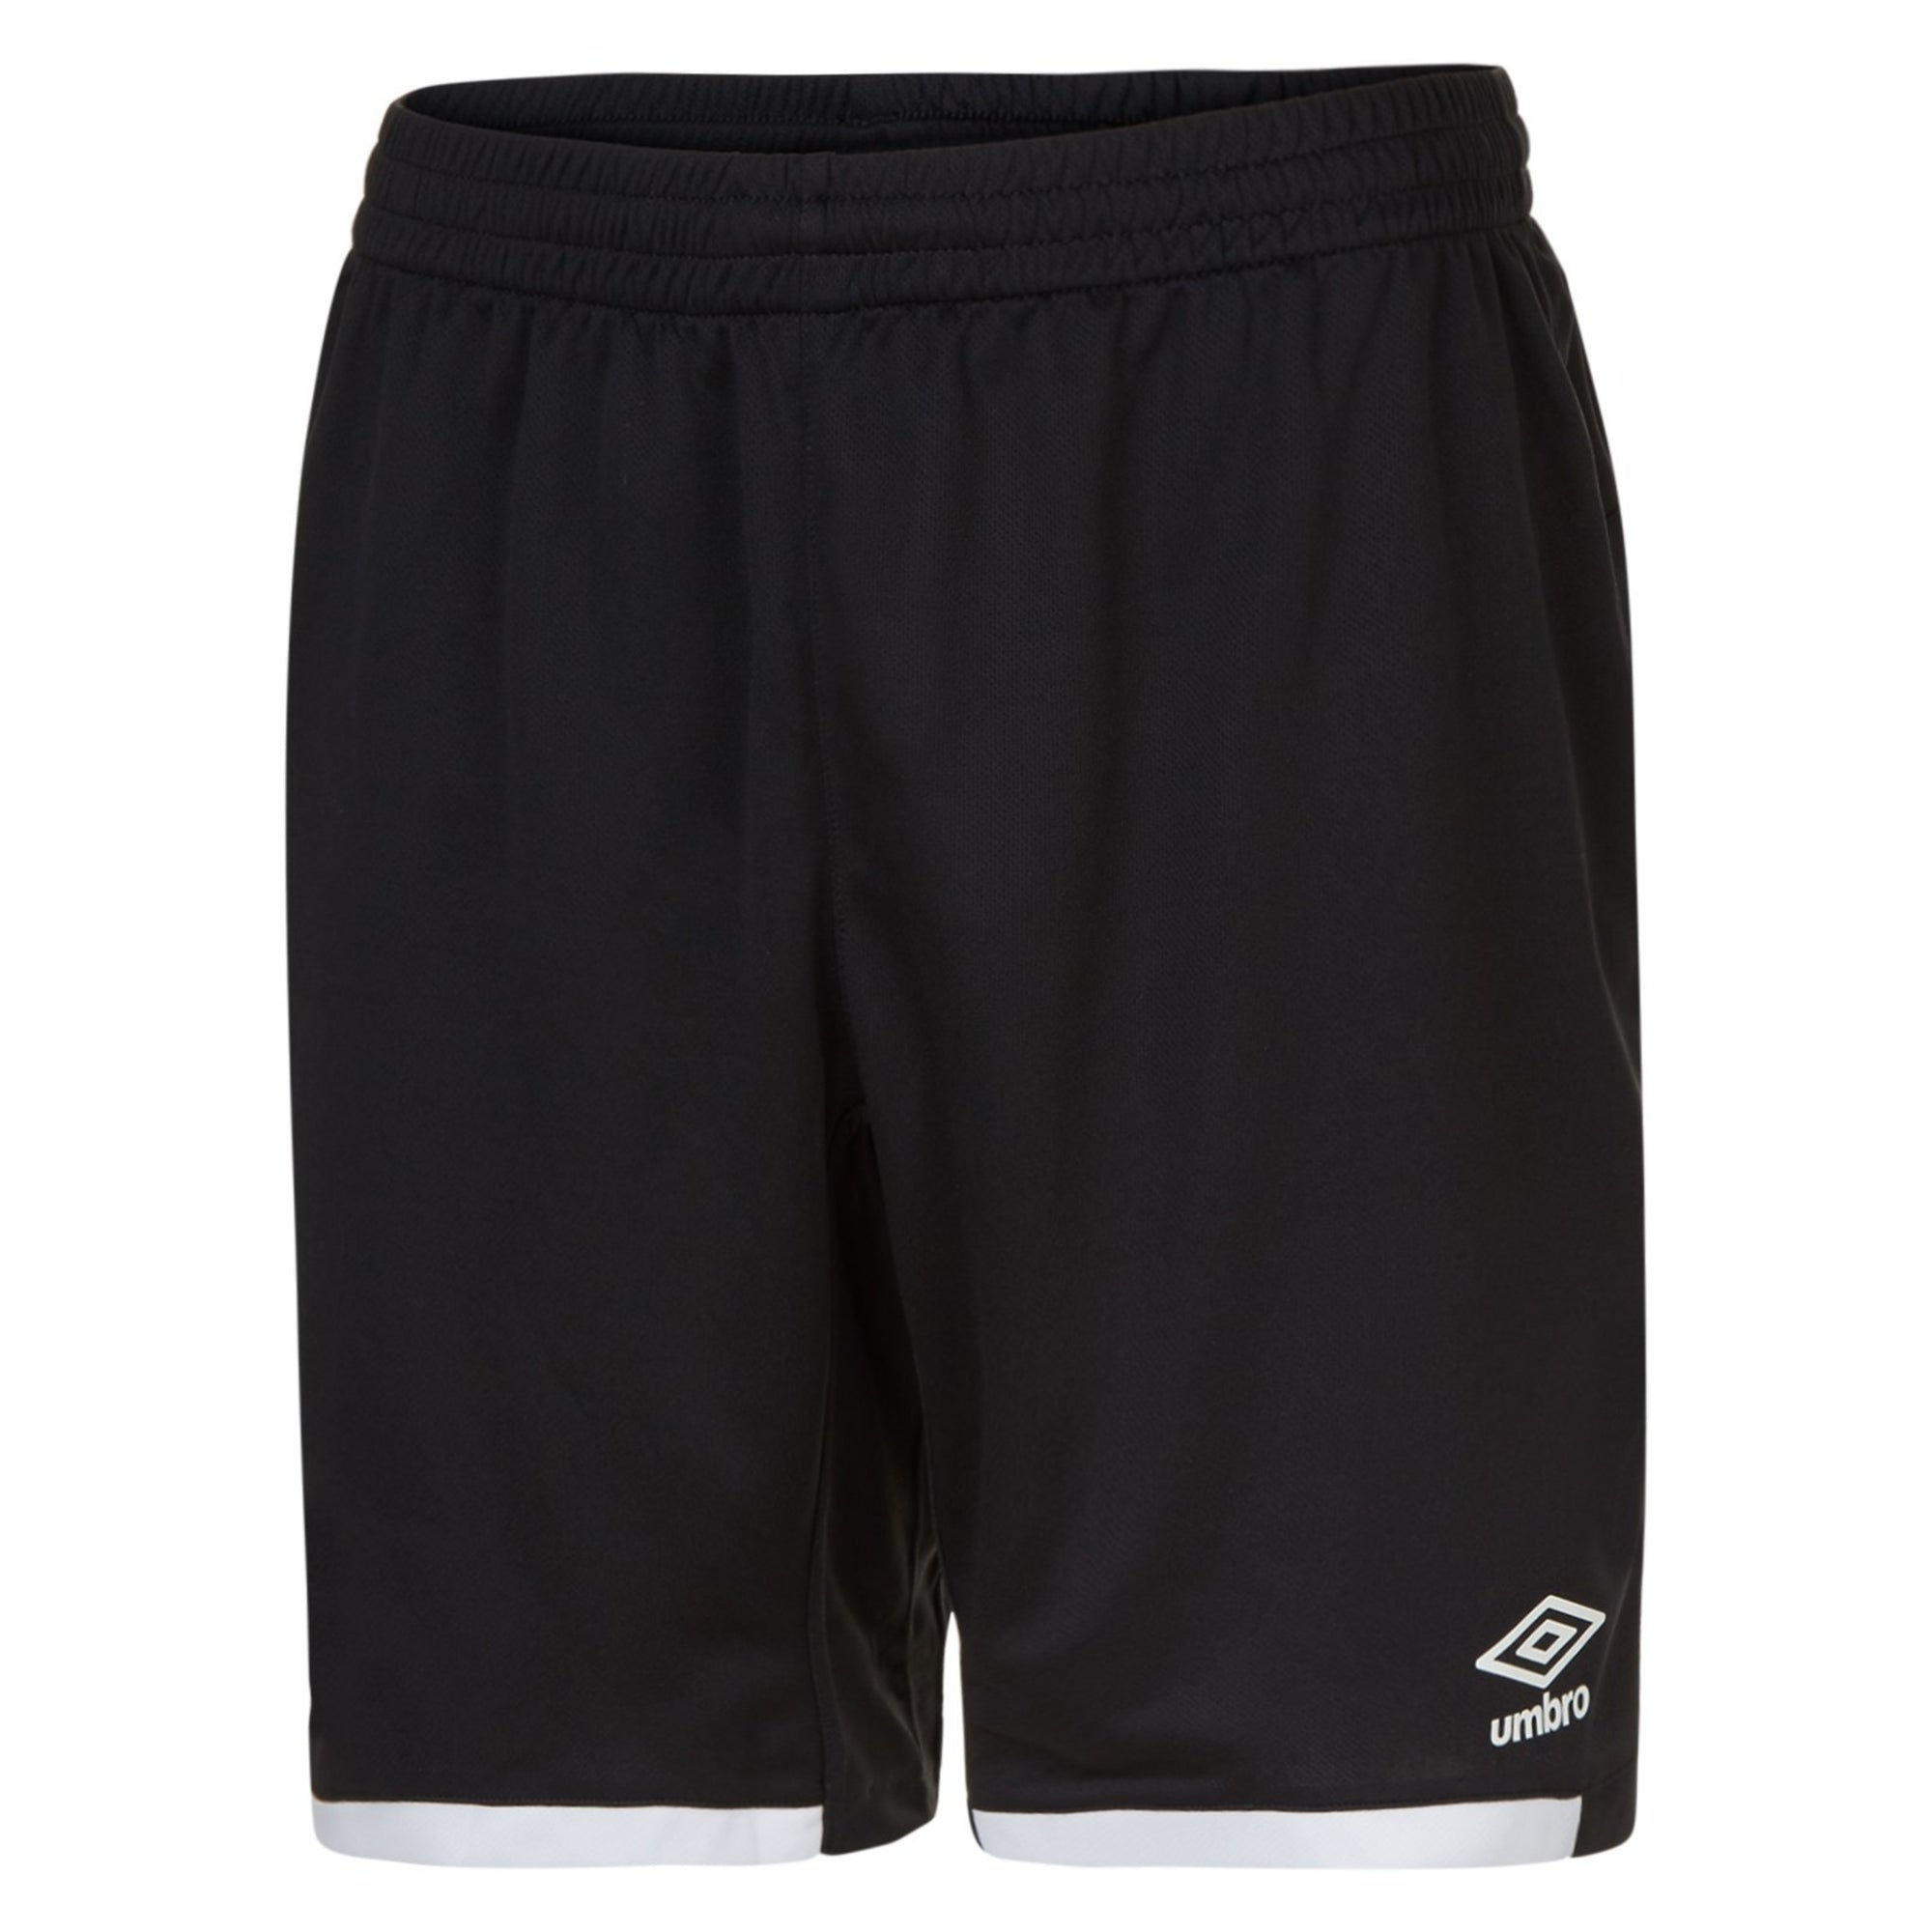 Black Umbro Premier shorts with contrast white hems